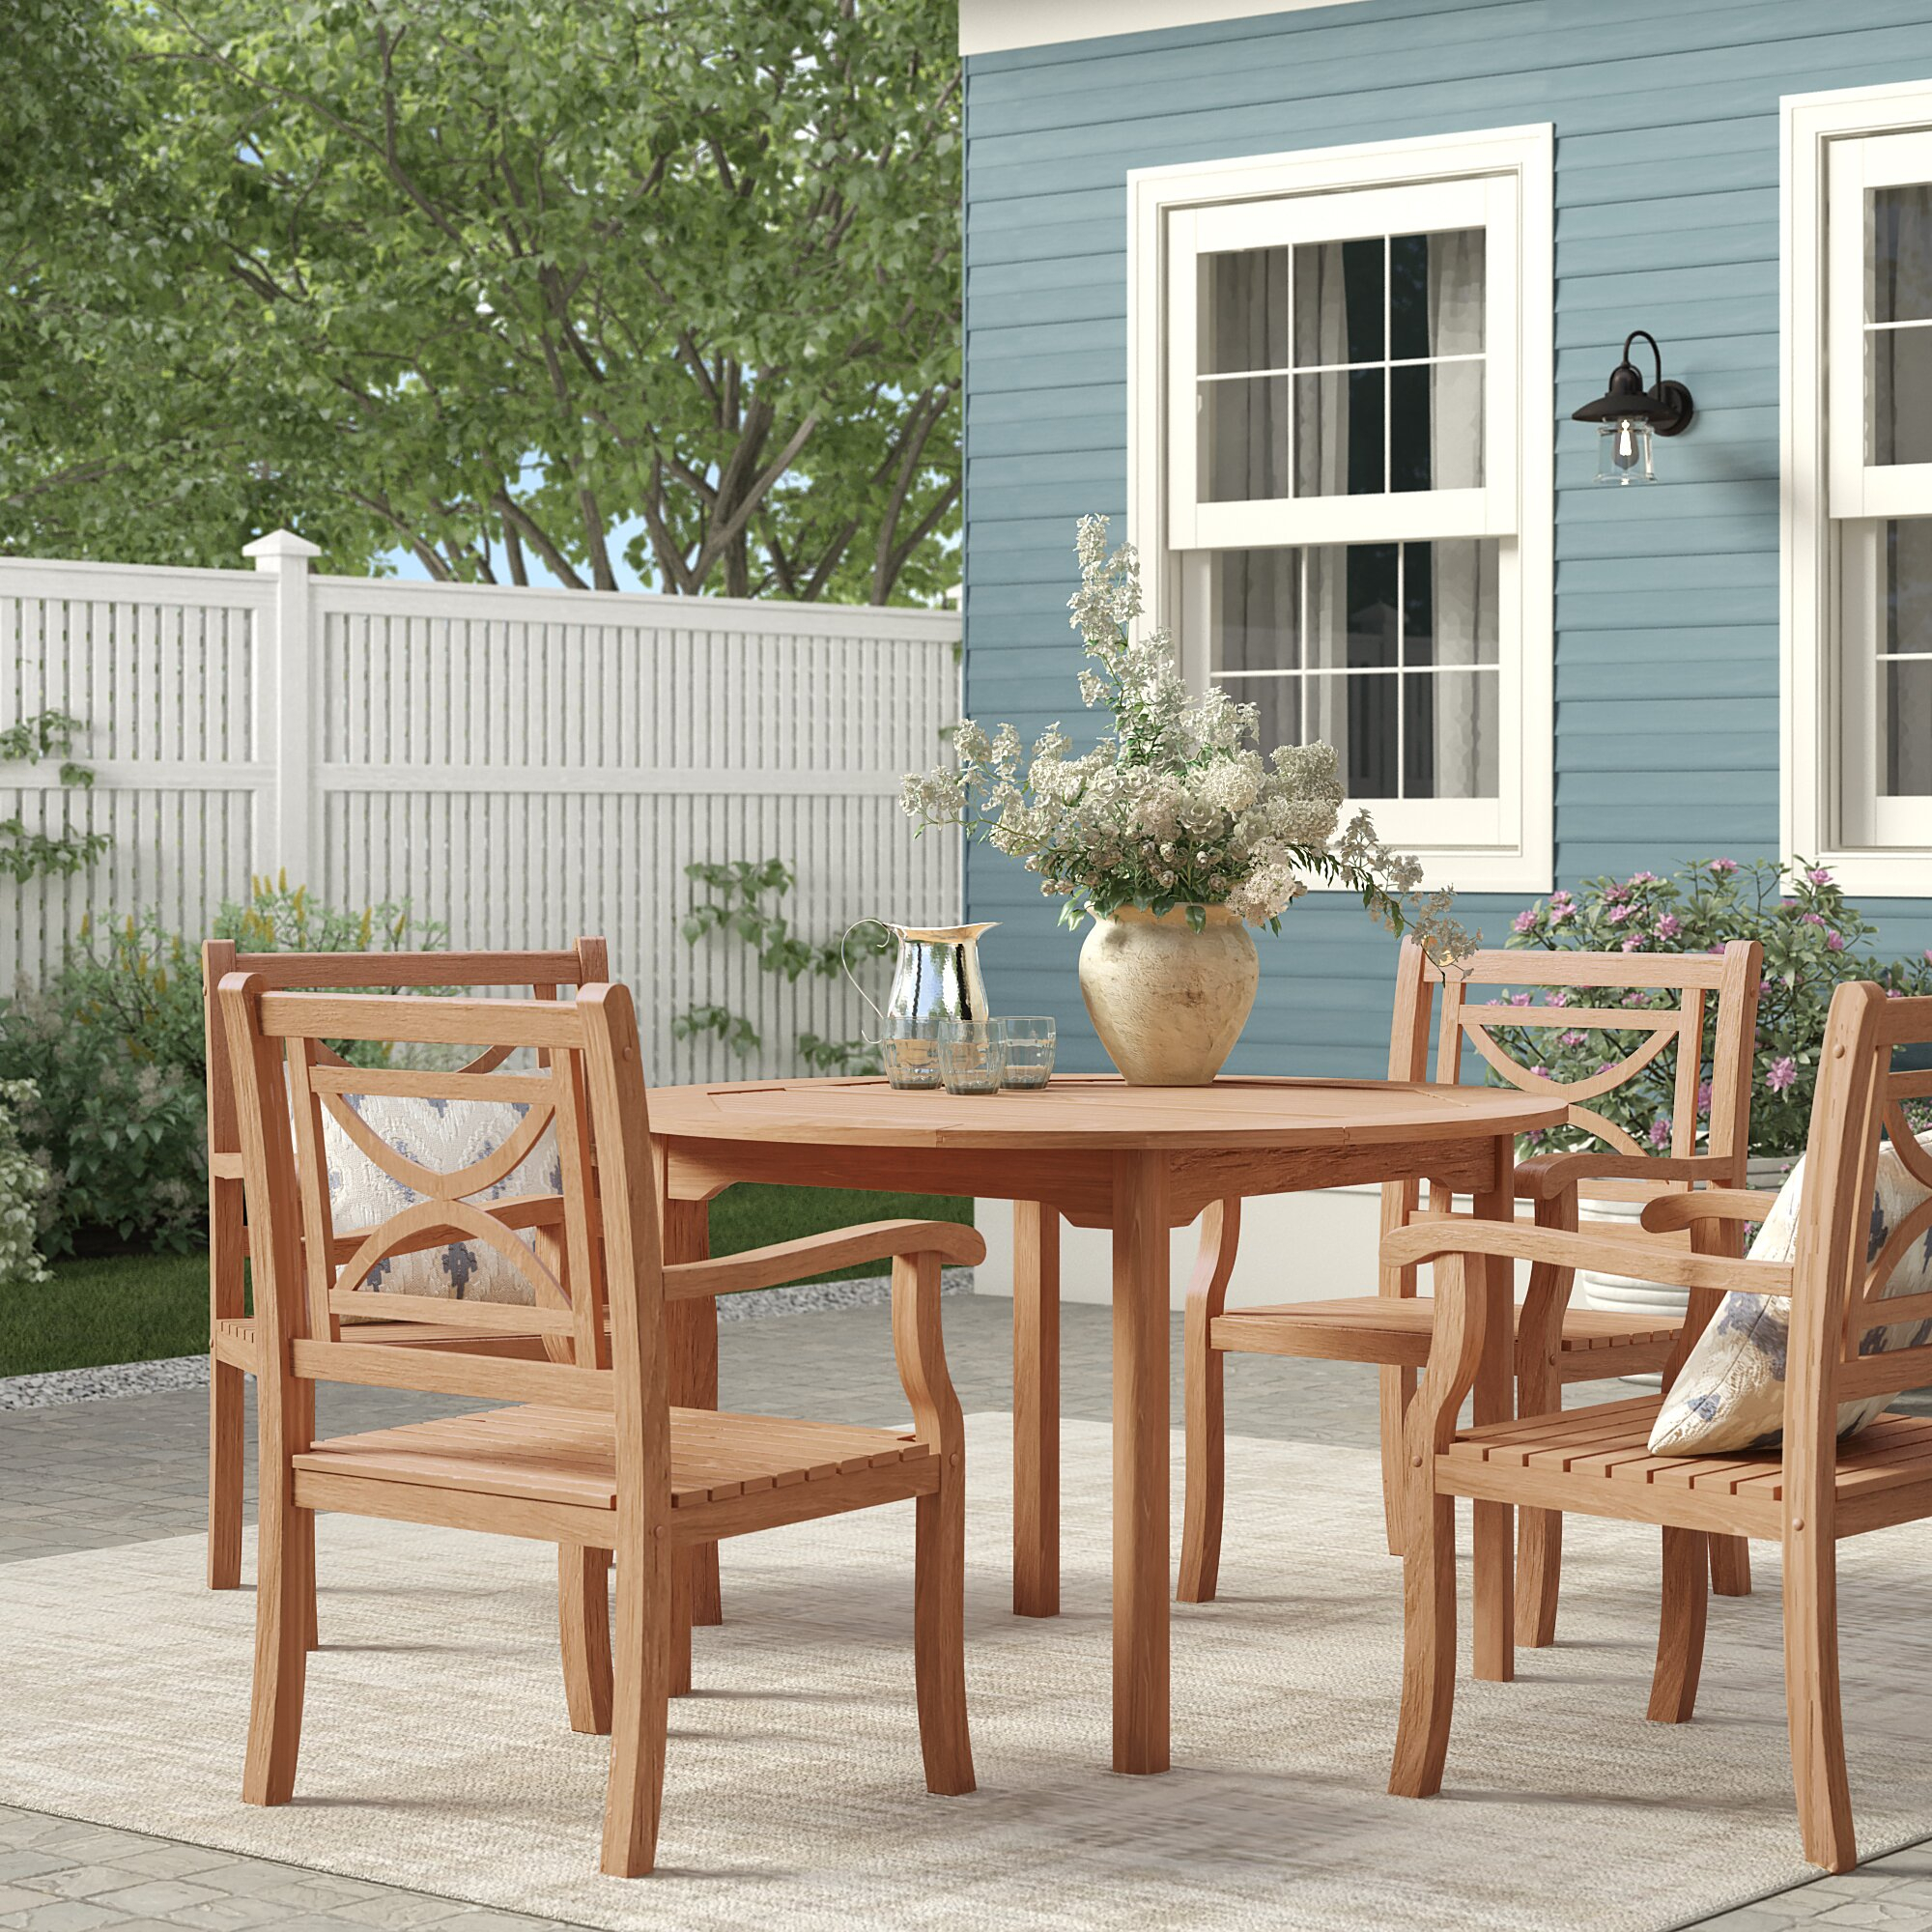 Brunswick 5 Piece Teak Dining Set With Regard To Current Adan 5 Piece Solid Wood Dining Sets (Set Of 5) (View 18 of 20)